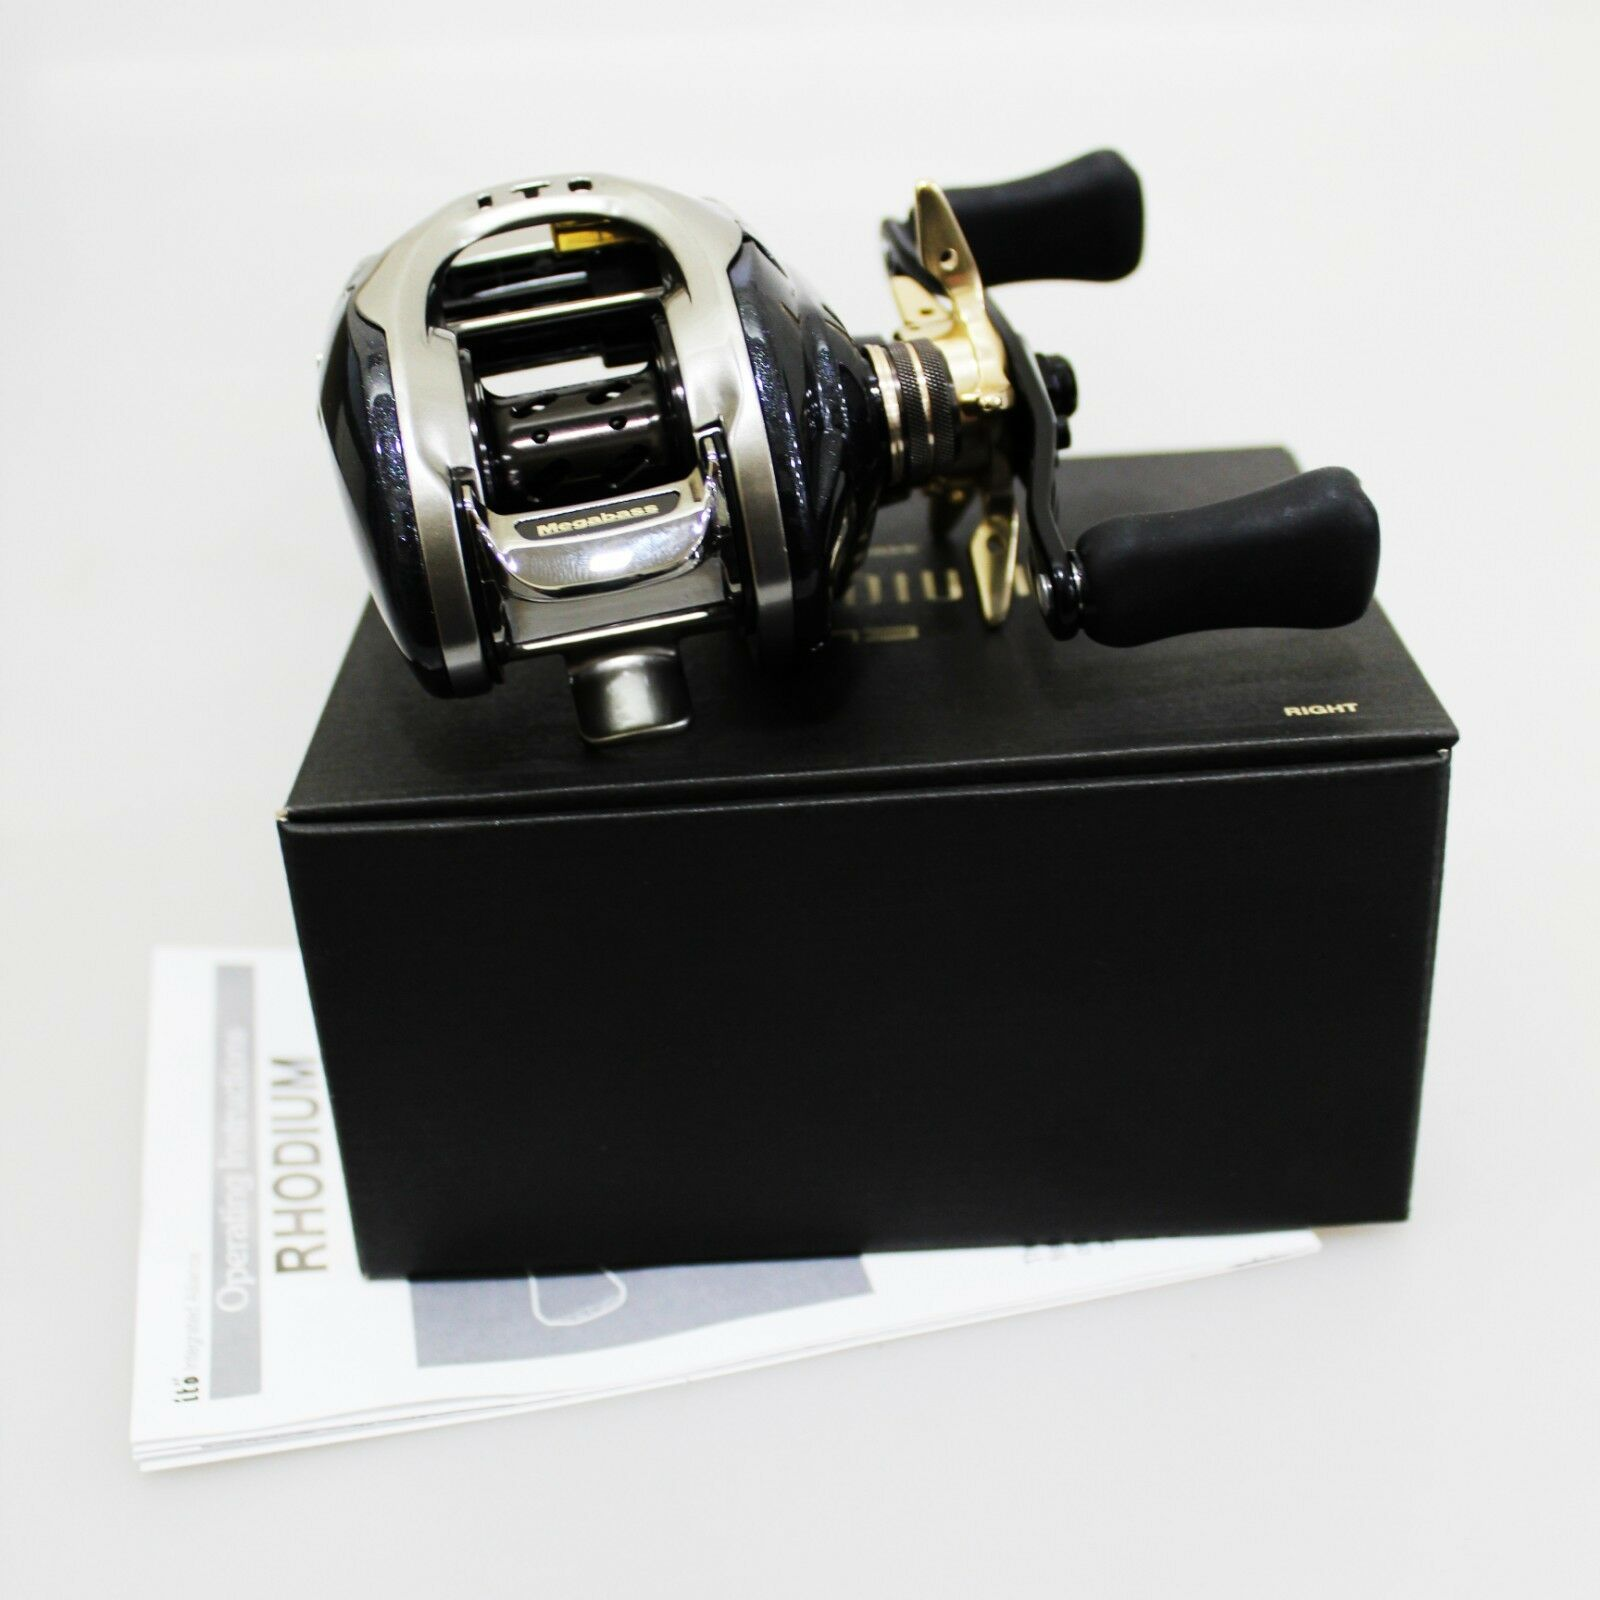 MEGABASS RHODIUM 73 Right Baitcasting Reel Fedex Priority 2days to Usa